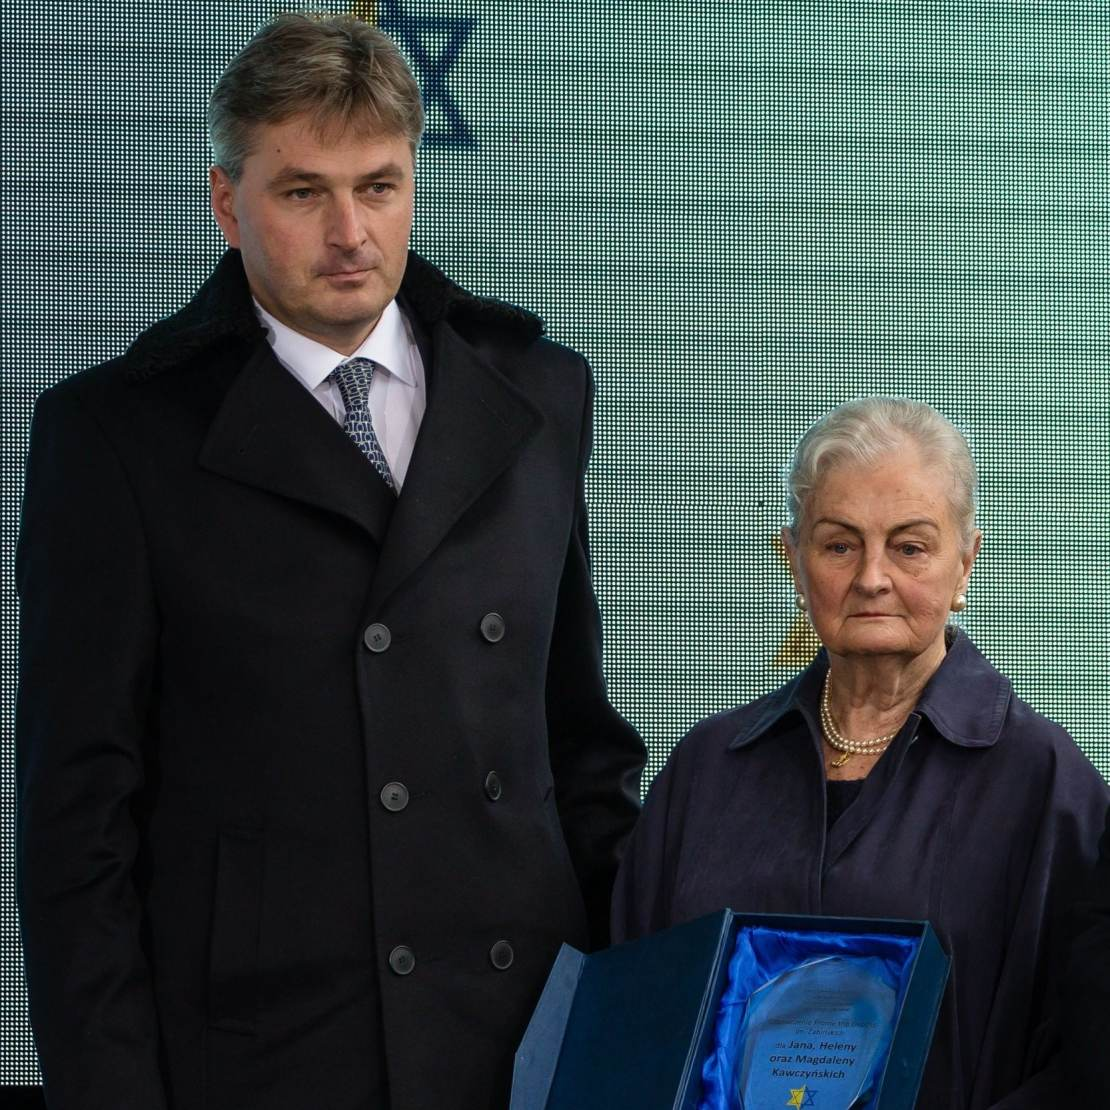 Daniel Kawczynski pictured with Krystyna Kawczynska during a 2017 ceremony honouring non-Jews who saved Jews during the Holocaust